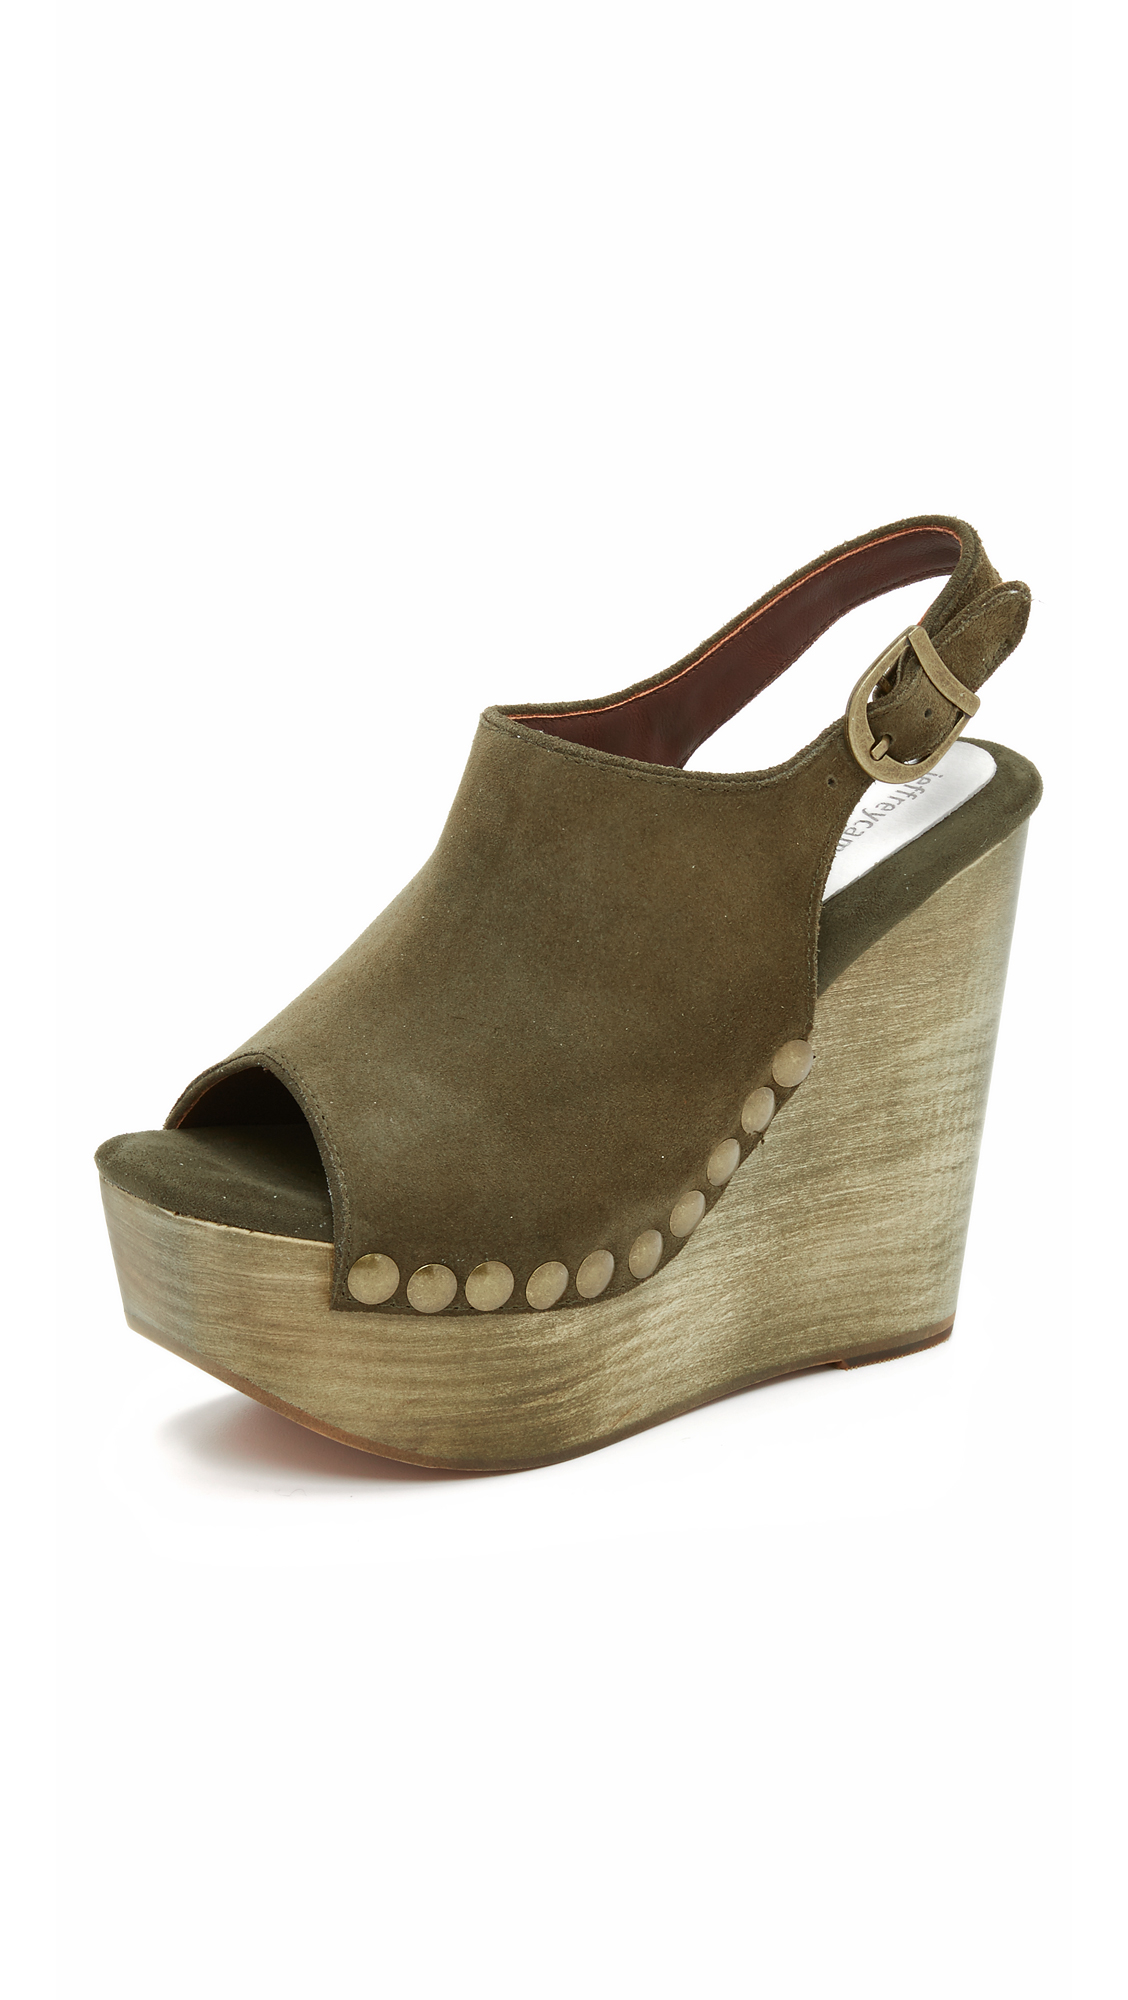 3fa1e486912b Lyst - Jeffrey Campbell Snick Wedge Sandals in Natural